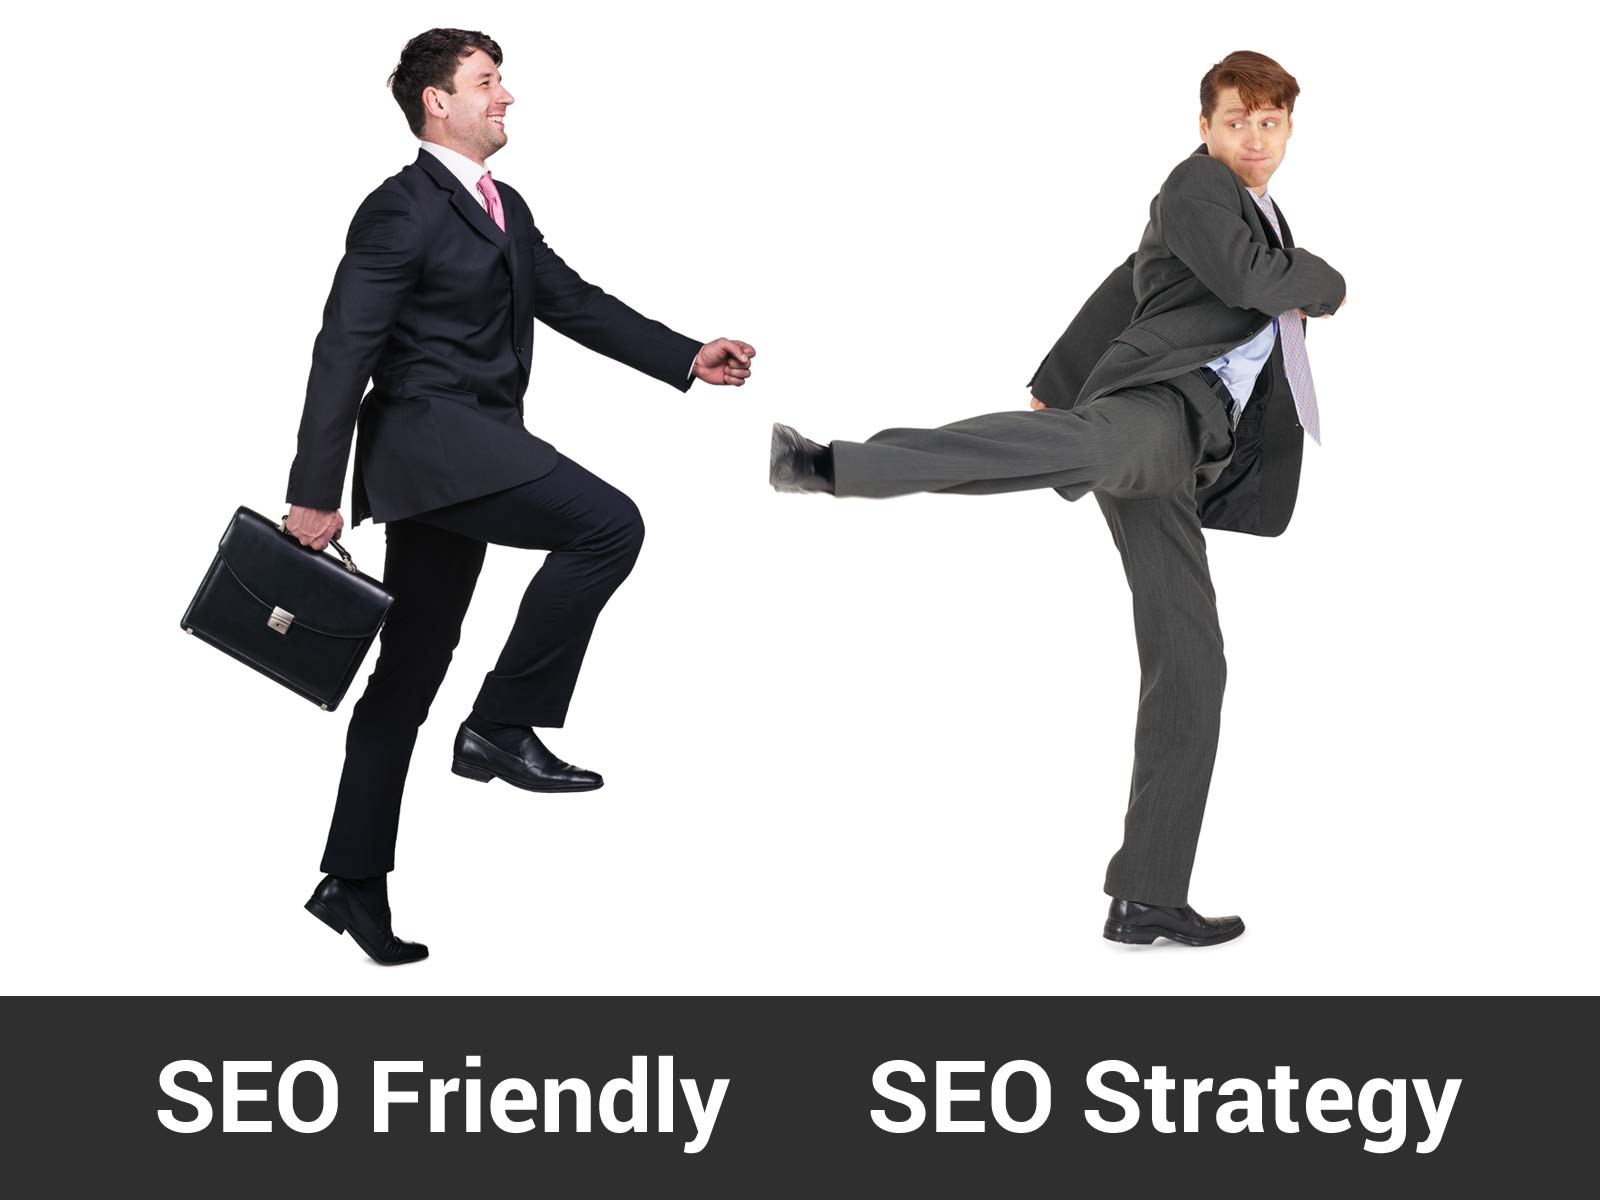 SEO Friendly vs. SEO Strategy: Two very different approaches